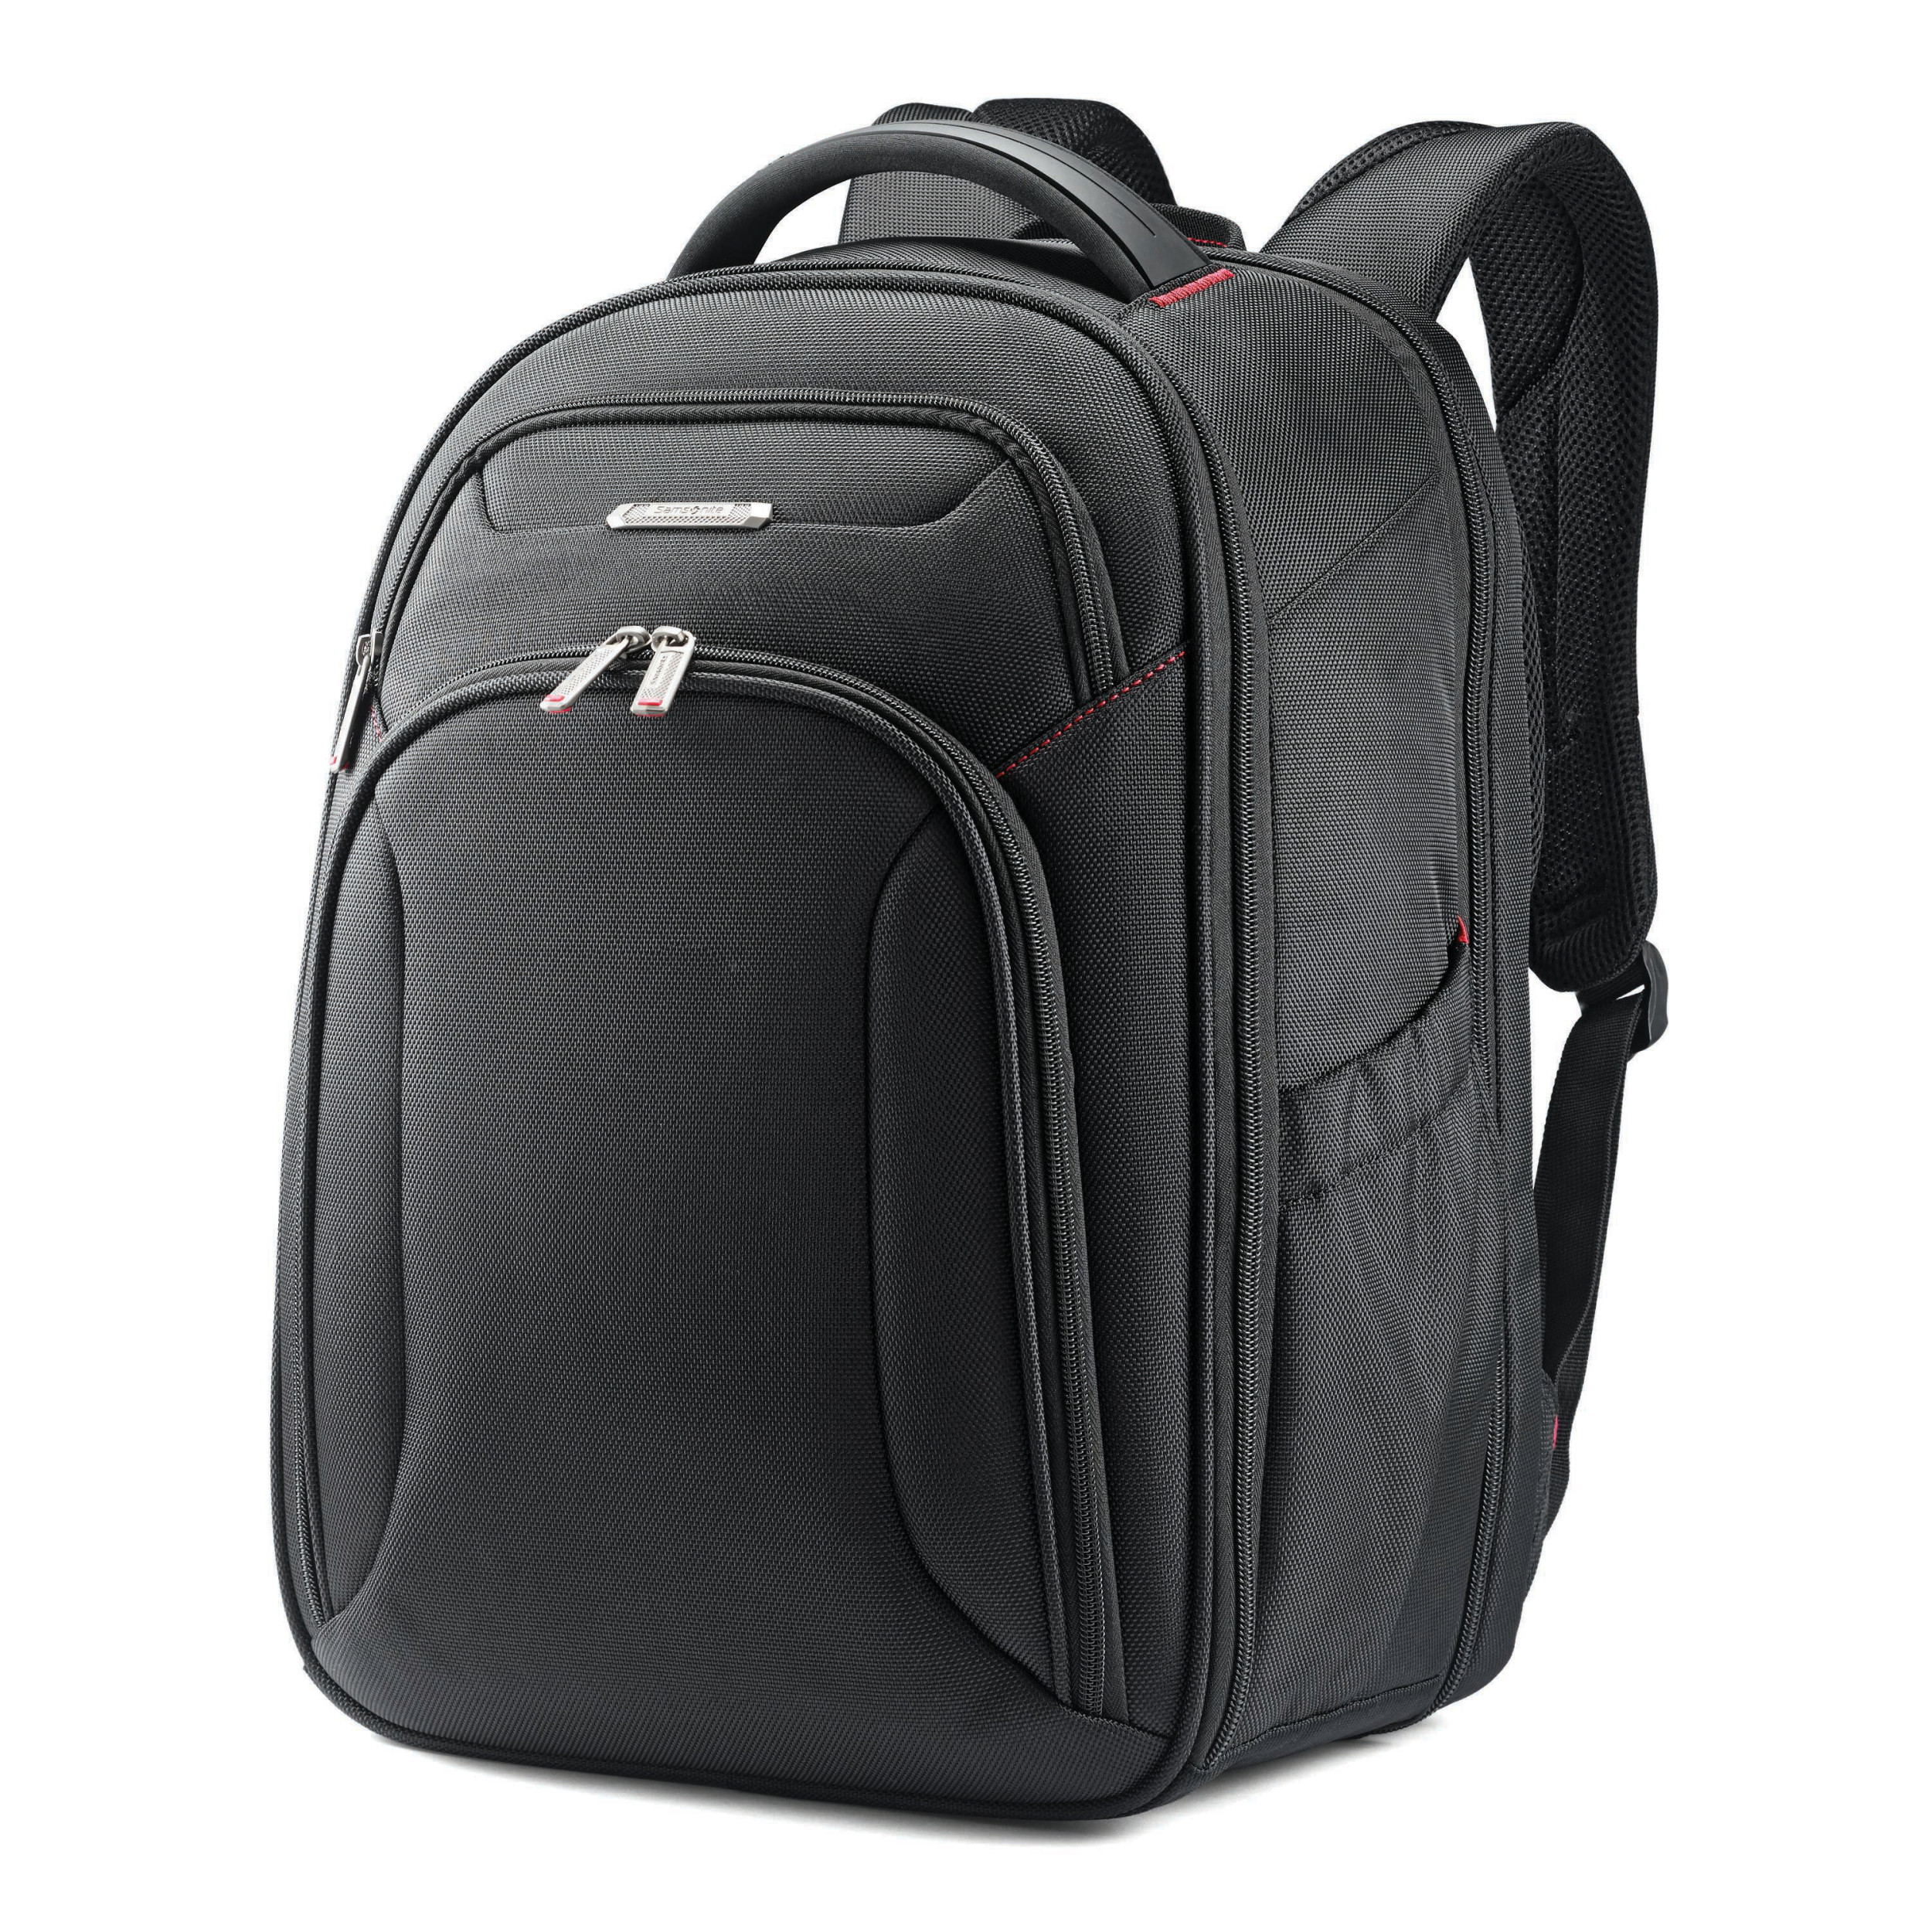 Samsonite 95005 - Xenon 3.0 Large Computer Backpack